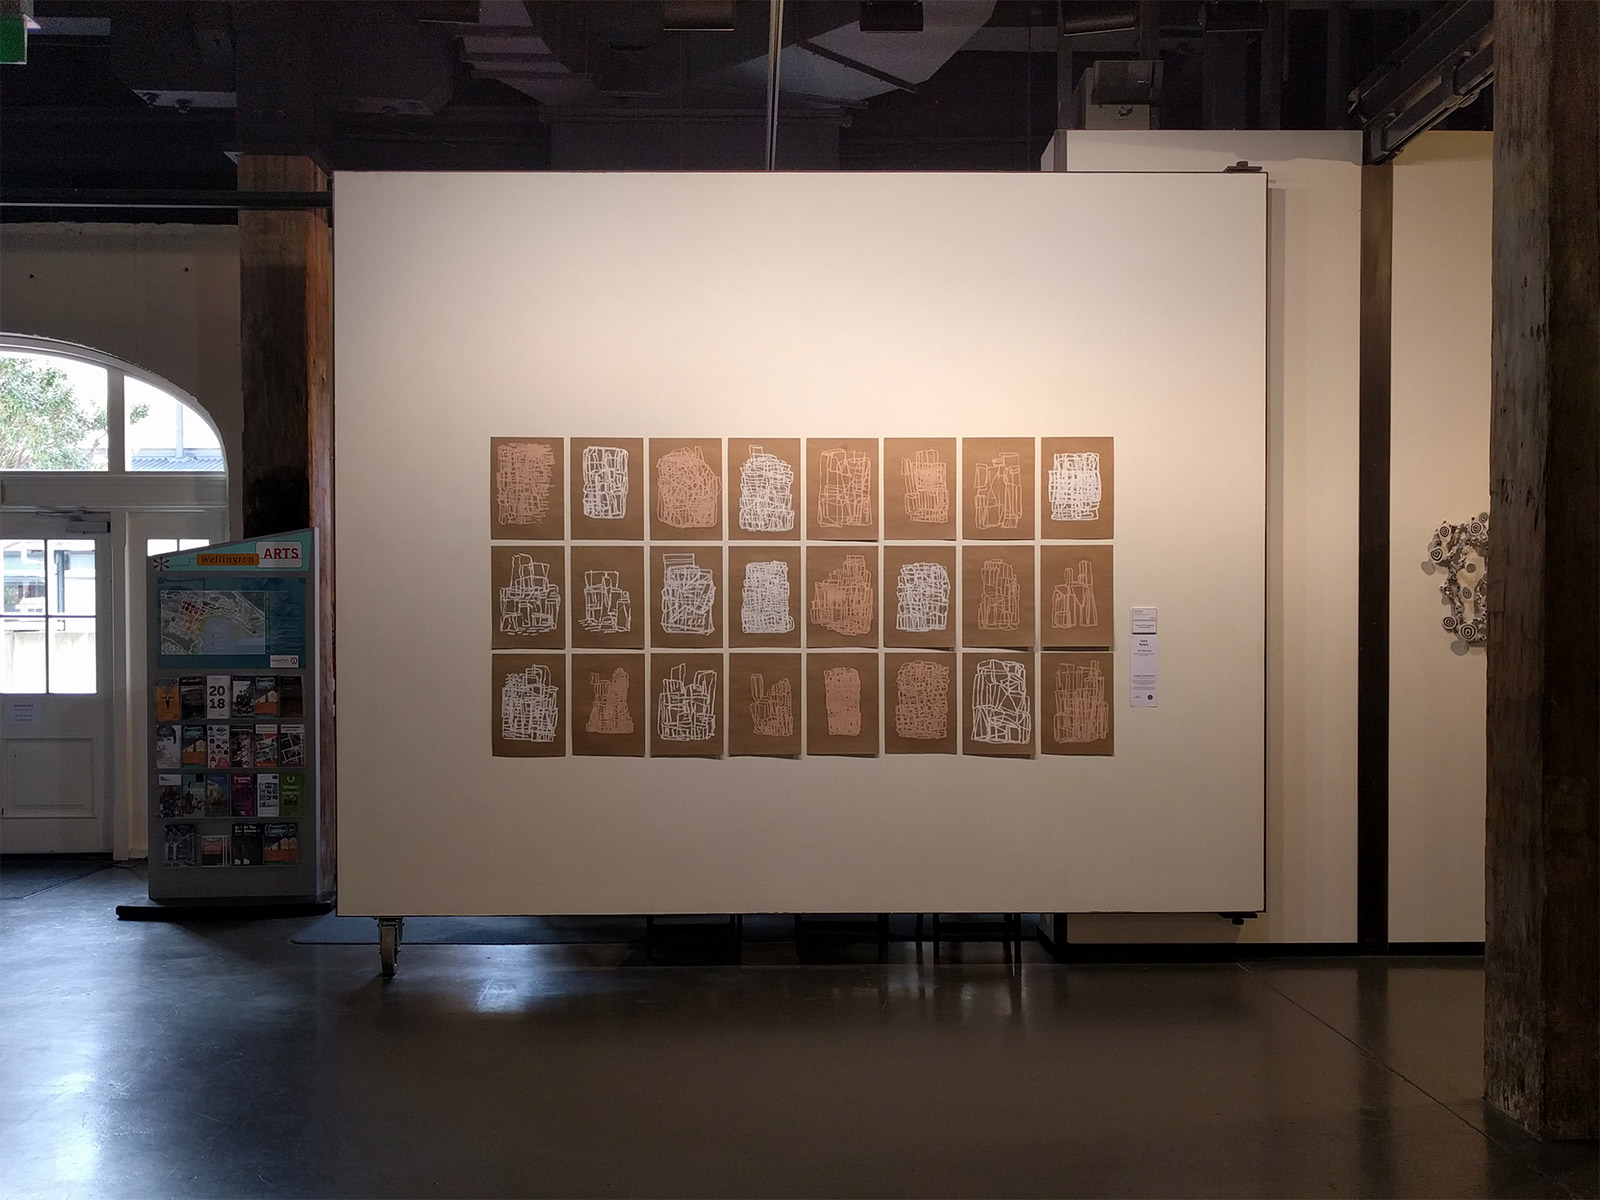 24 Drawings - pink and white oilstick on 24 sheets of A3 kraft paper - on display at the Parkin Drawing Prize